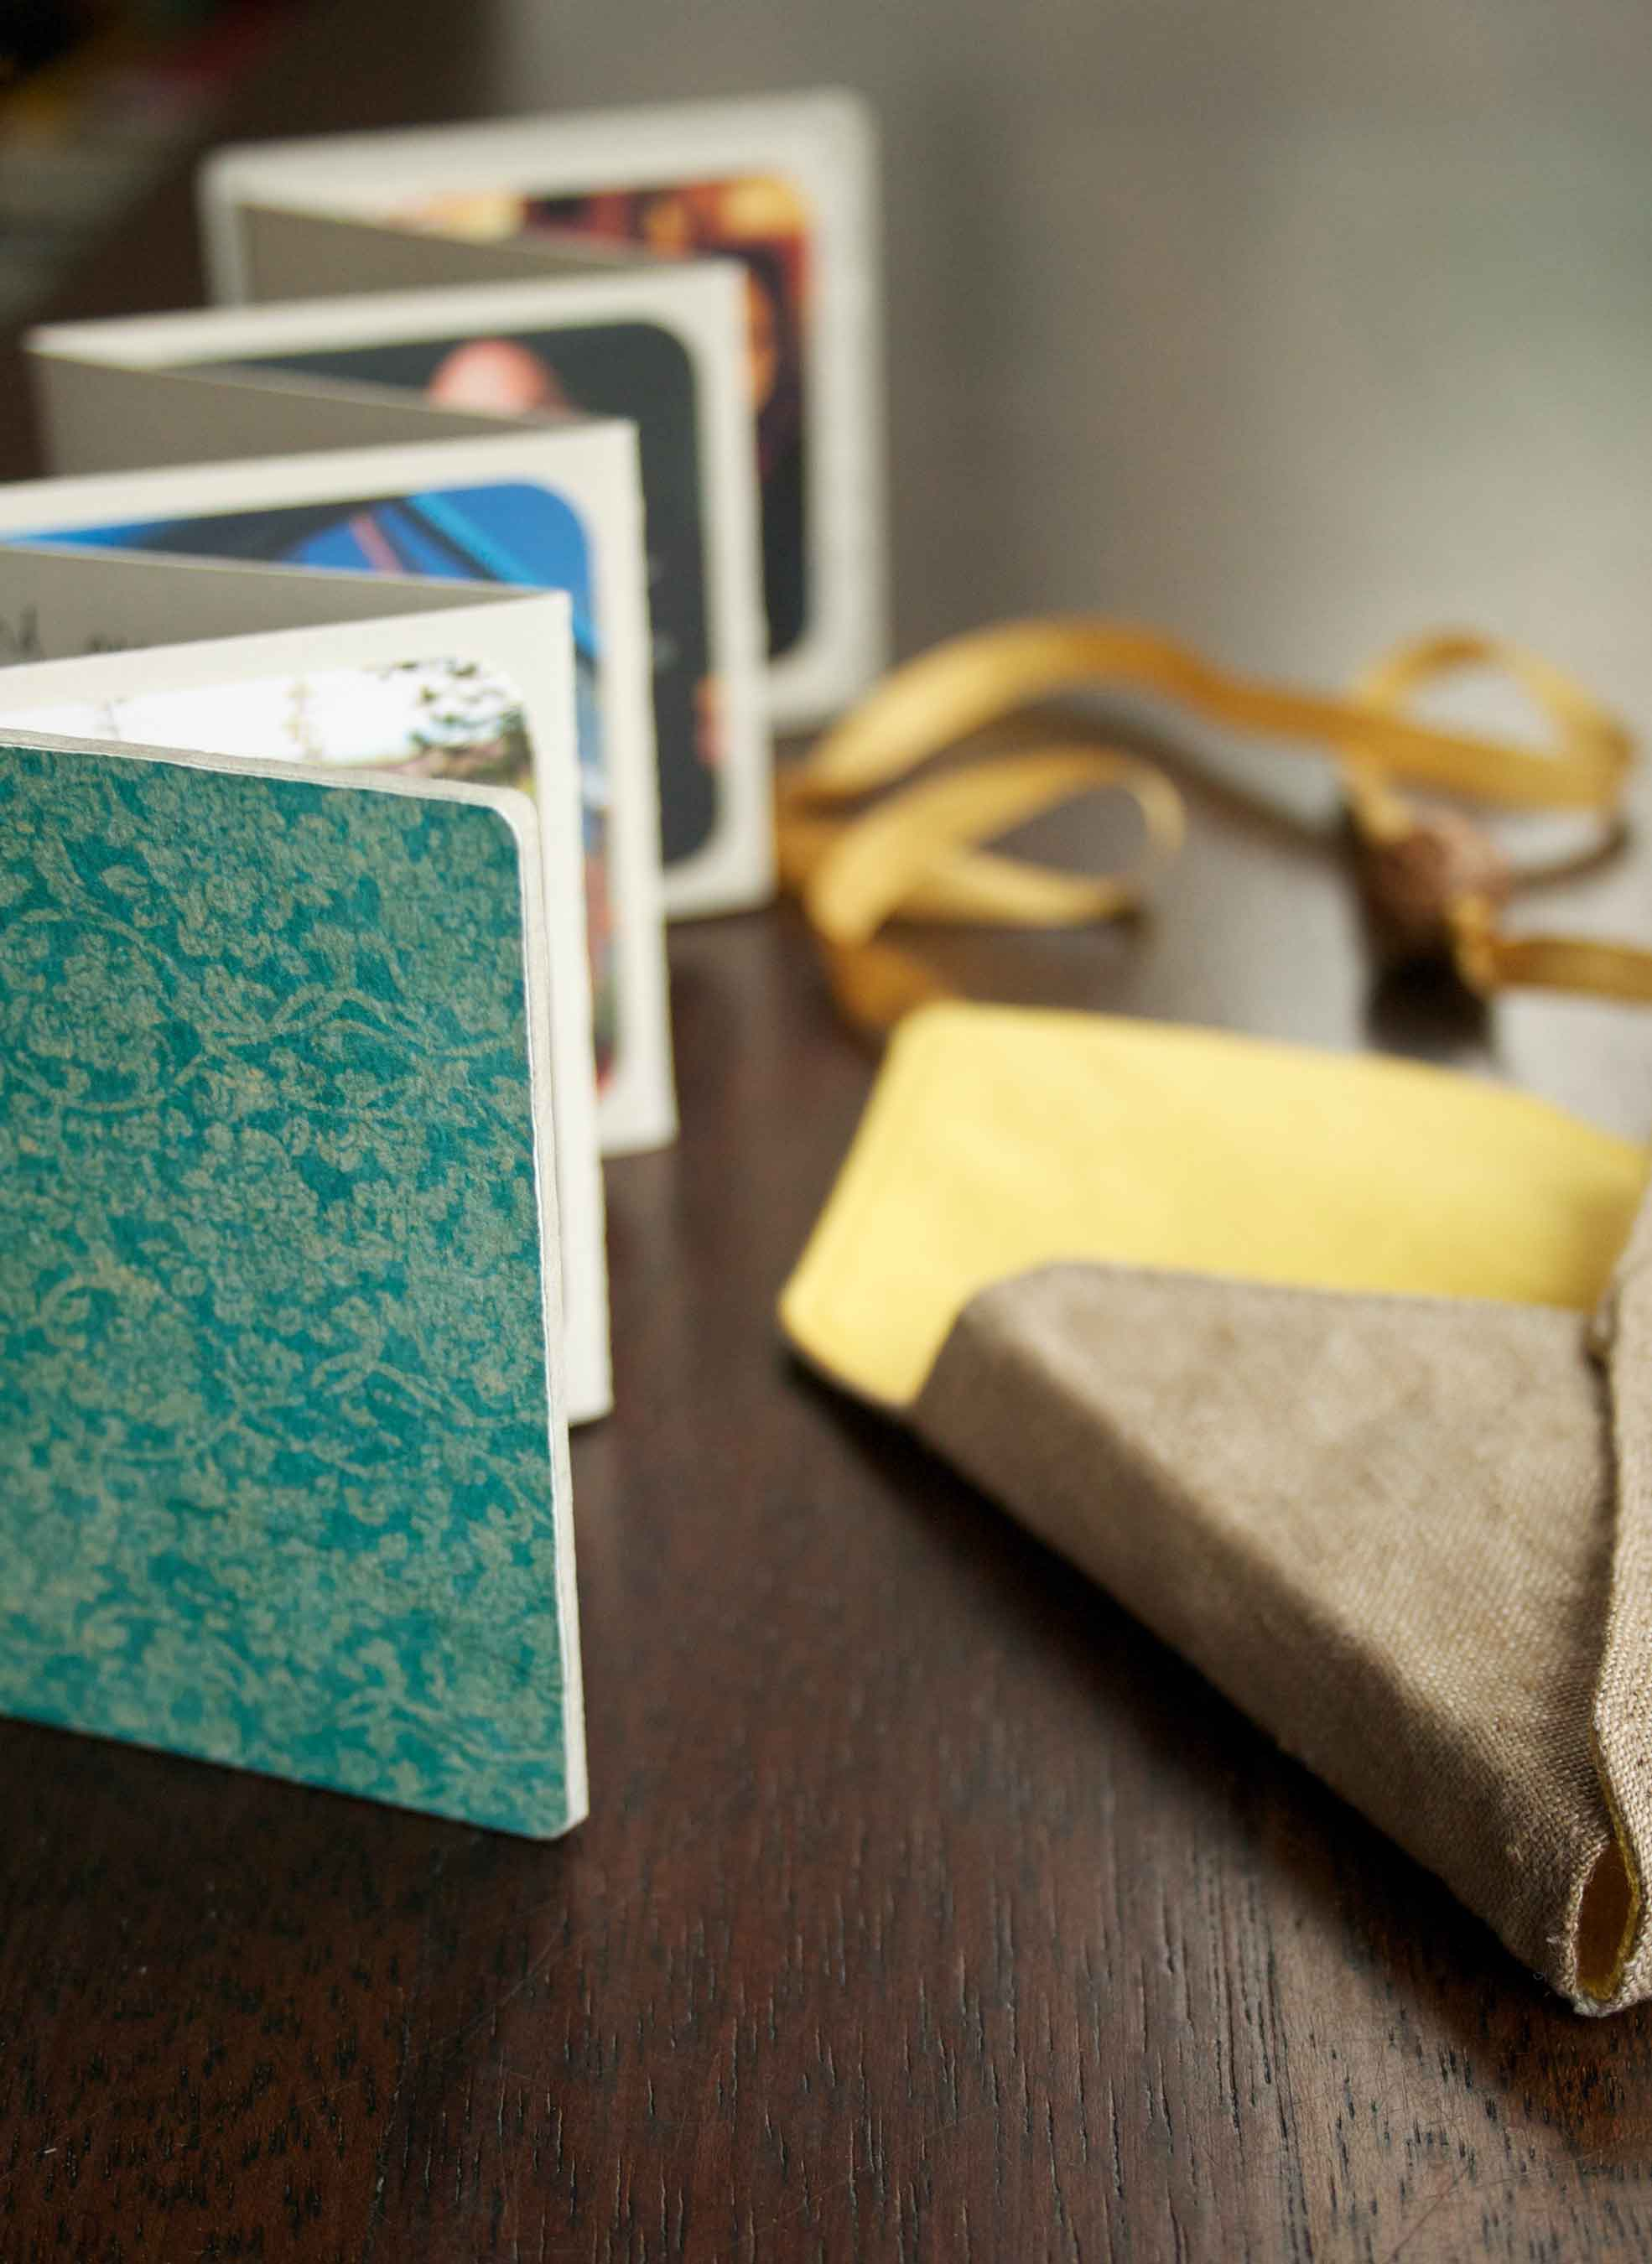 Mothers Day handmade accordion photo book project from Thread & Whisk